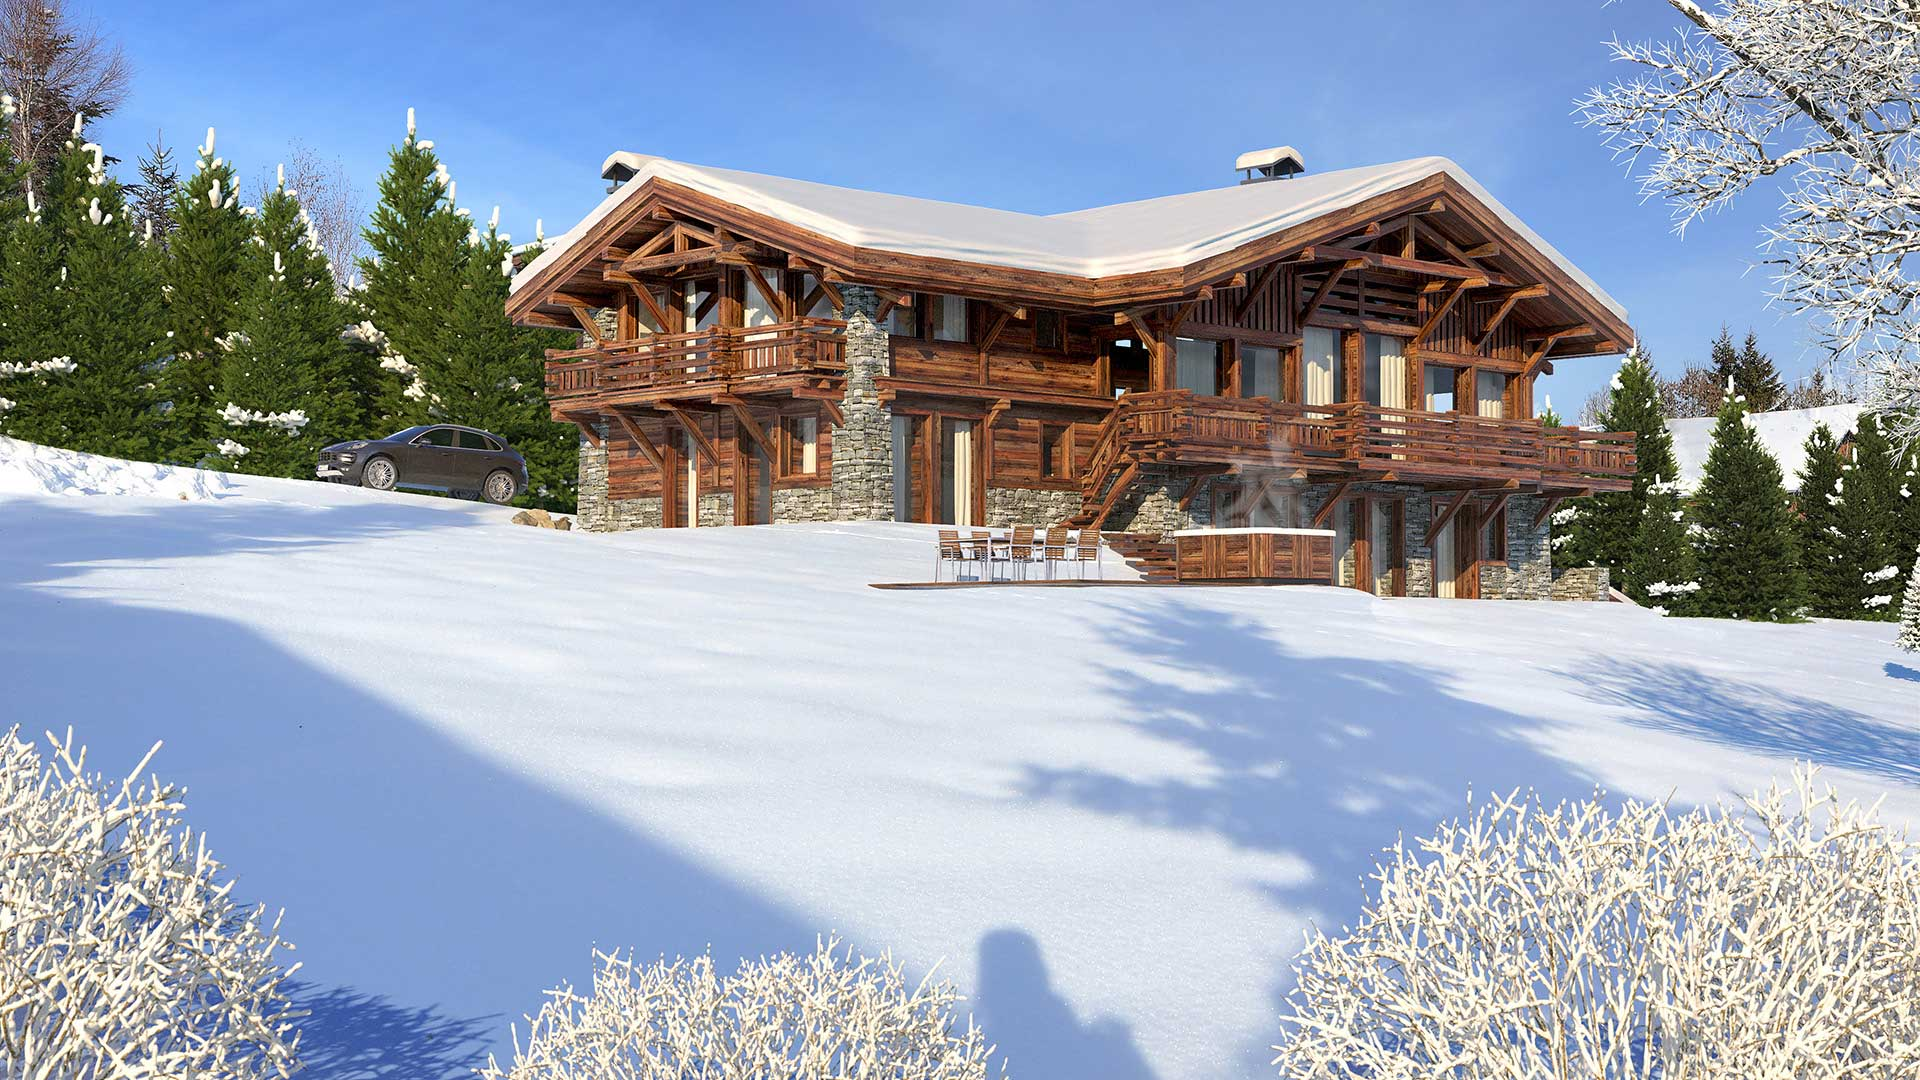 Computer generated image perspective of a luxurious chalet in the mountains.